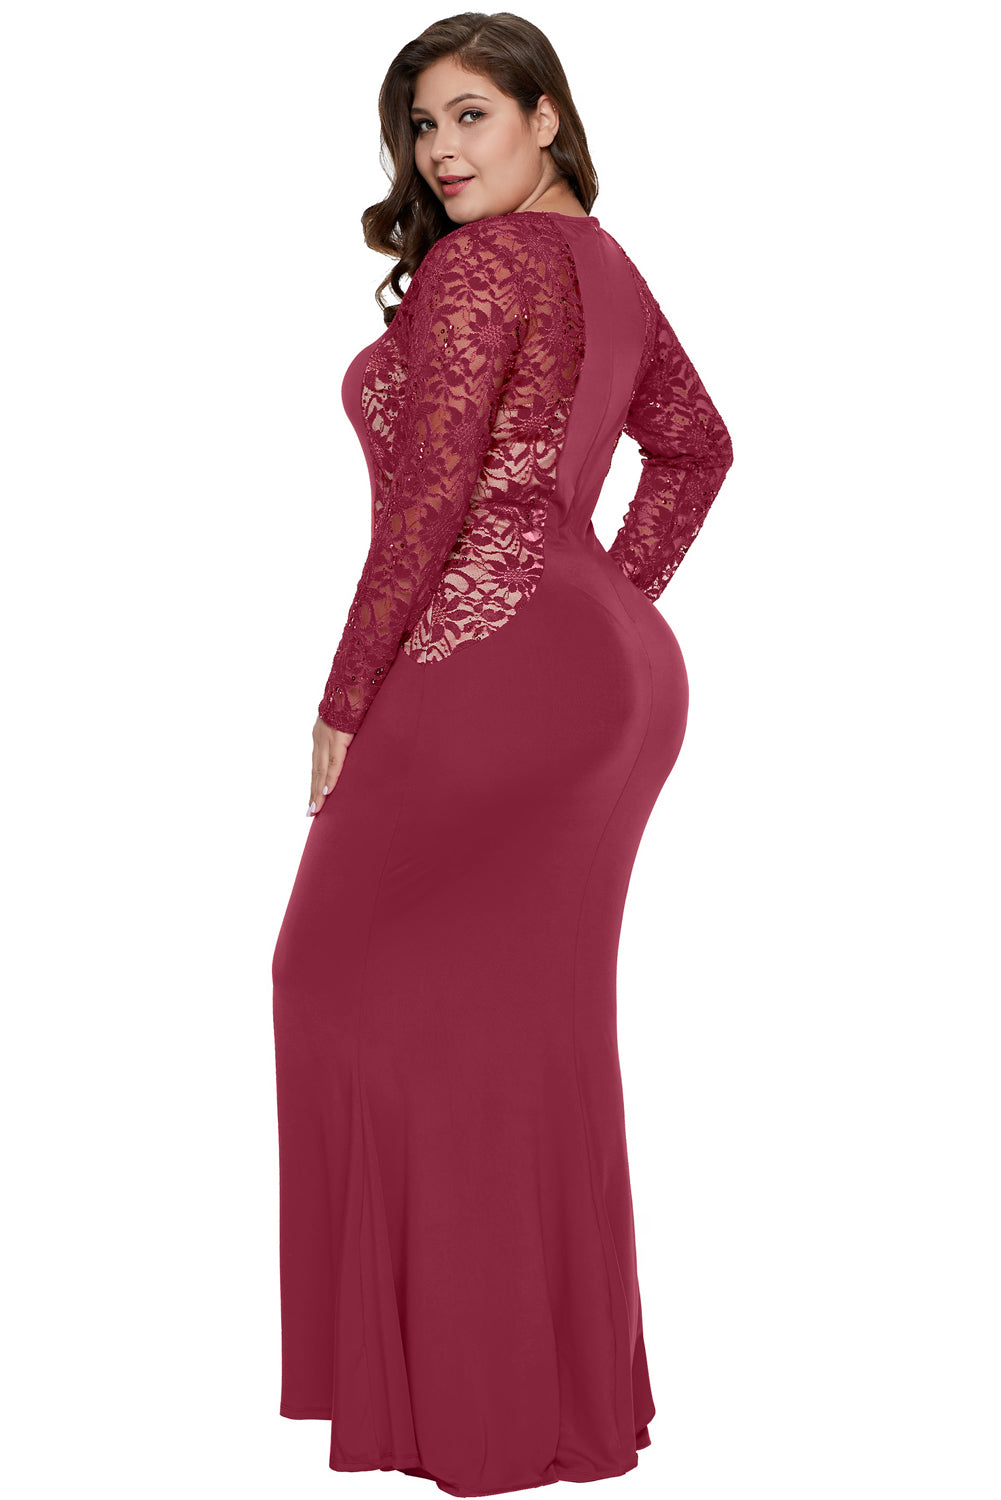 Red Lace and Knit Plus Size A-line Gown Plus Size Dresses Discount Designer Fashion Clothes Shoes Bags Women Men Kids Children Black Owned Business